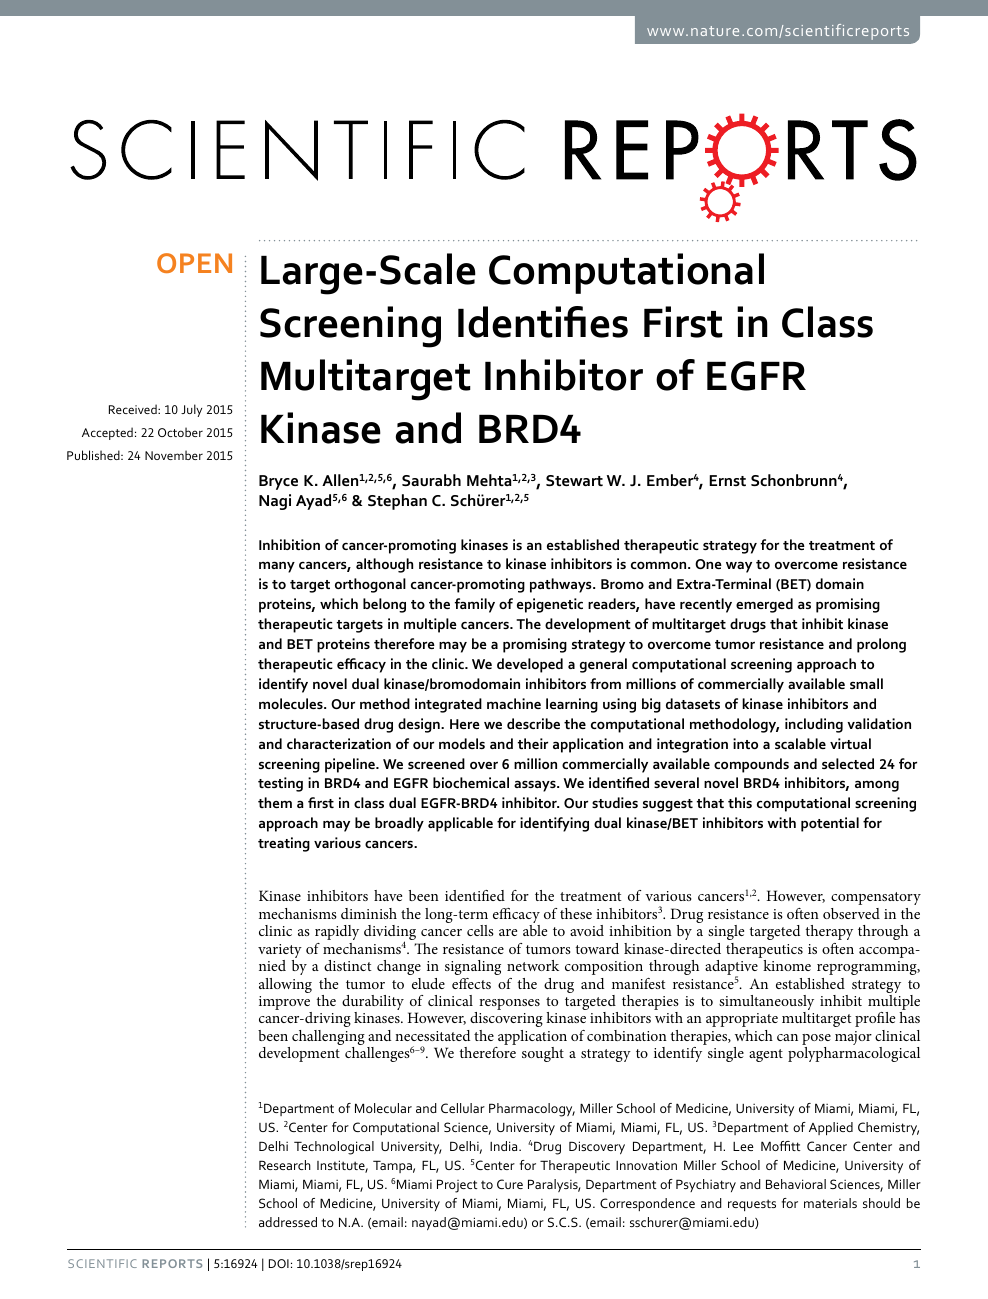 Large-Scale Computational Screening Identifies First in Class